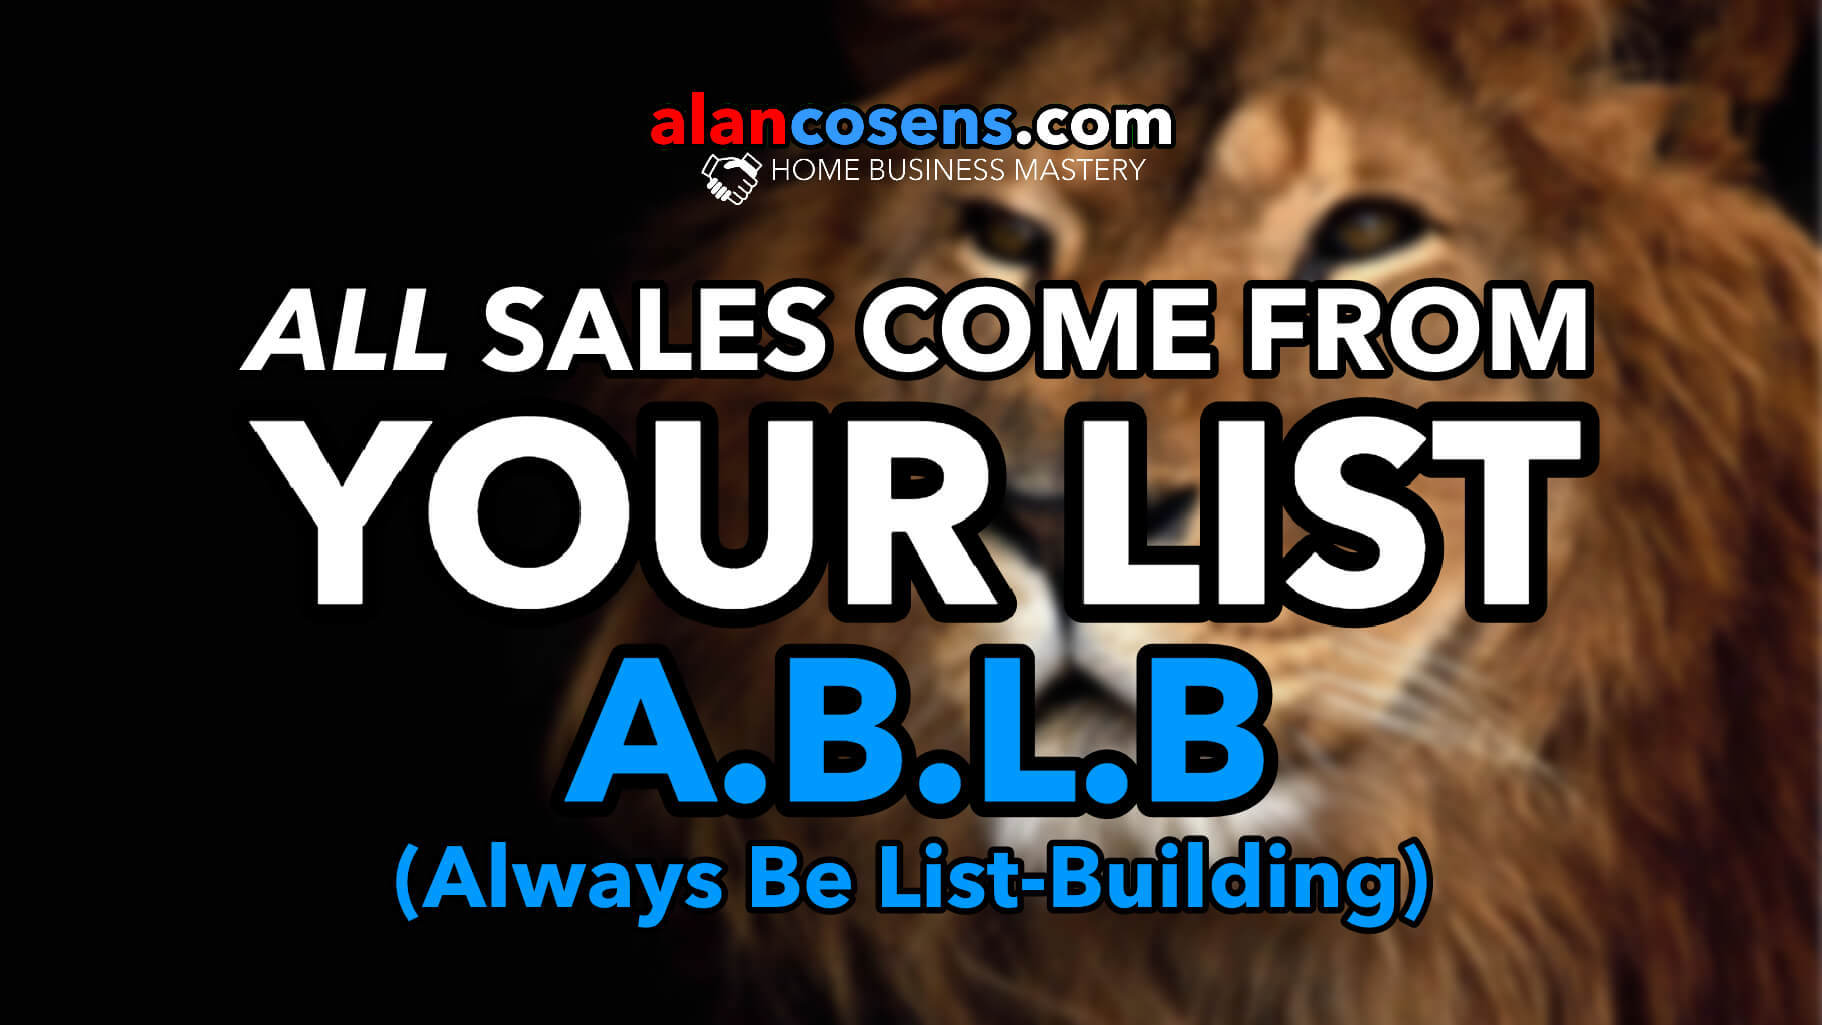 A.B.L.B. All Sales Come From Your List